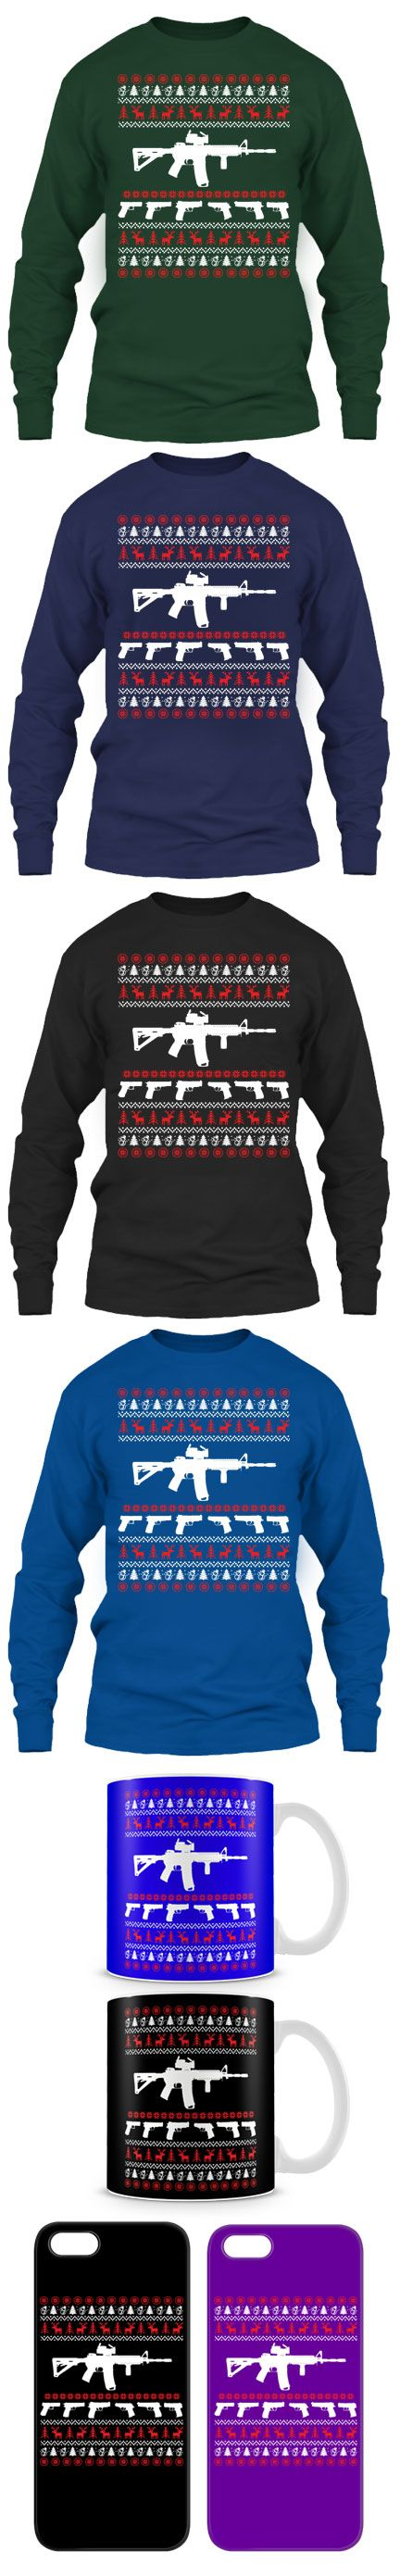 review parka AR15 Ugly Christmas Sweater  Click The Image To Buy It Now or Tag Someone You Want To Buy This For